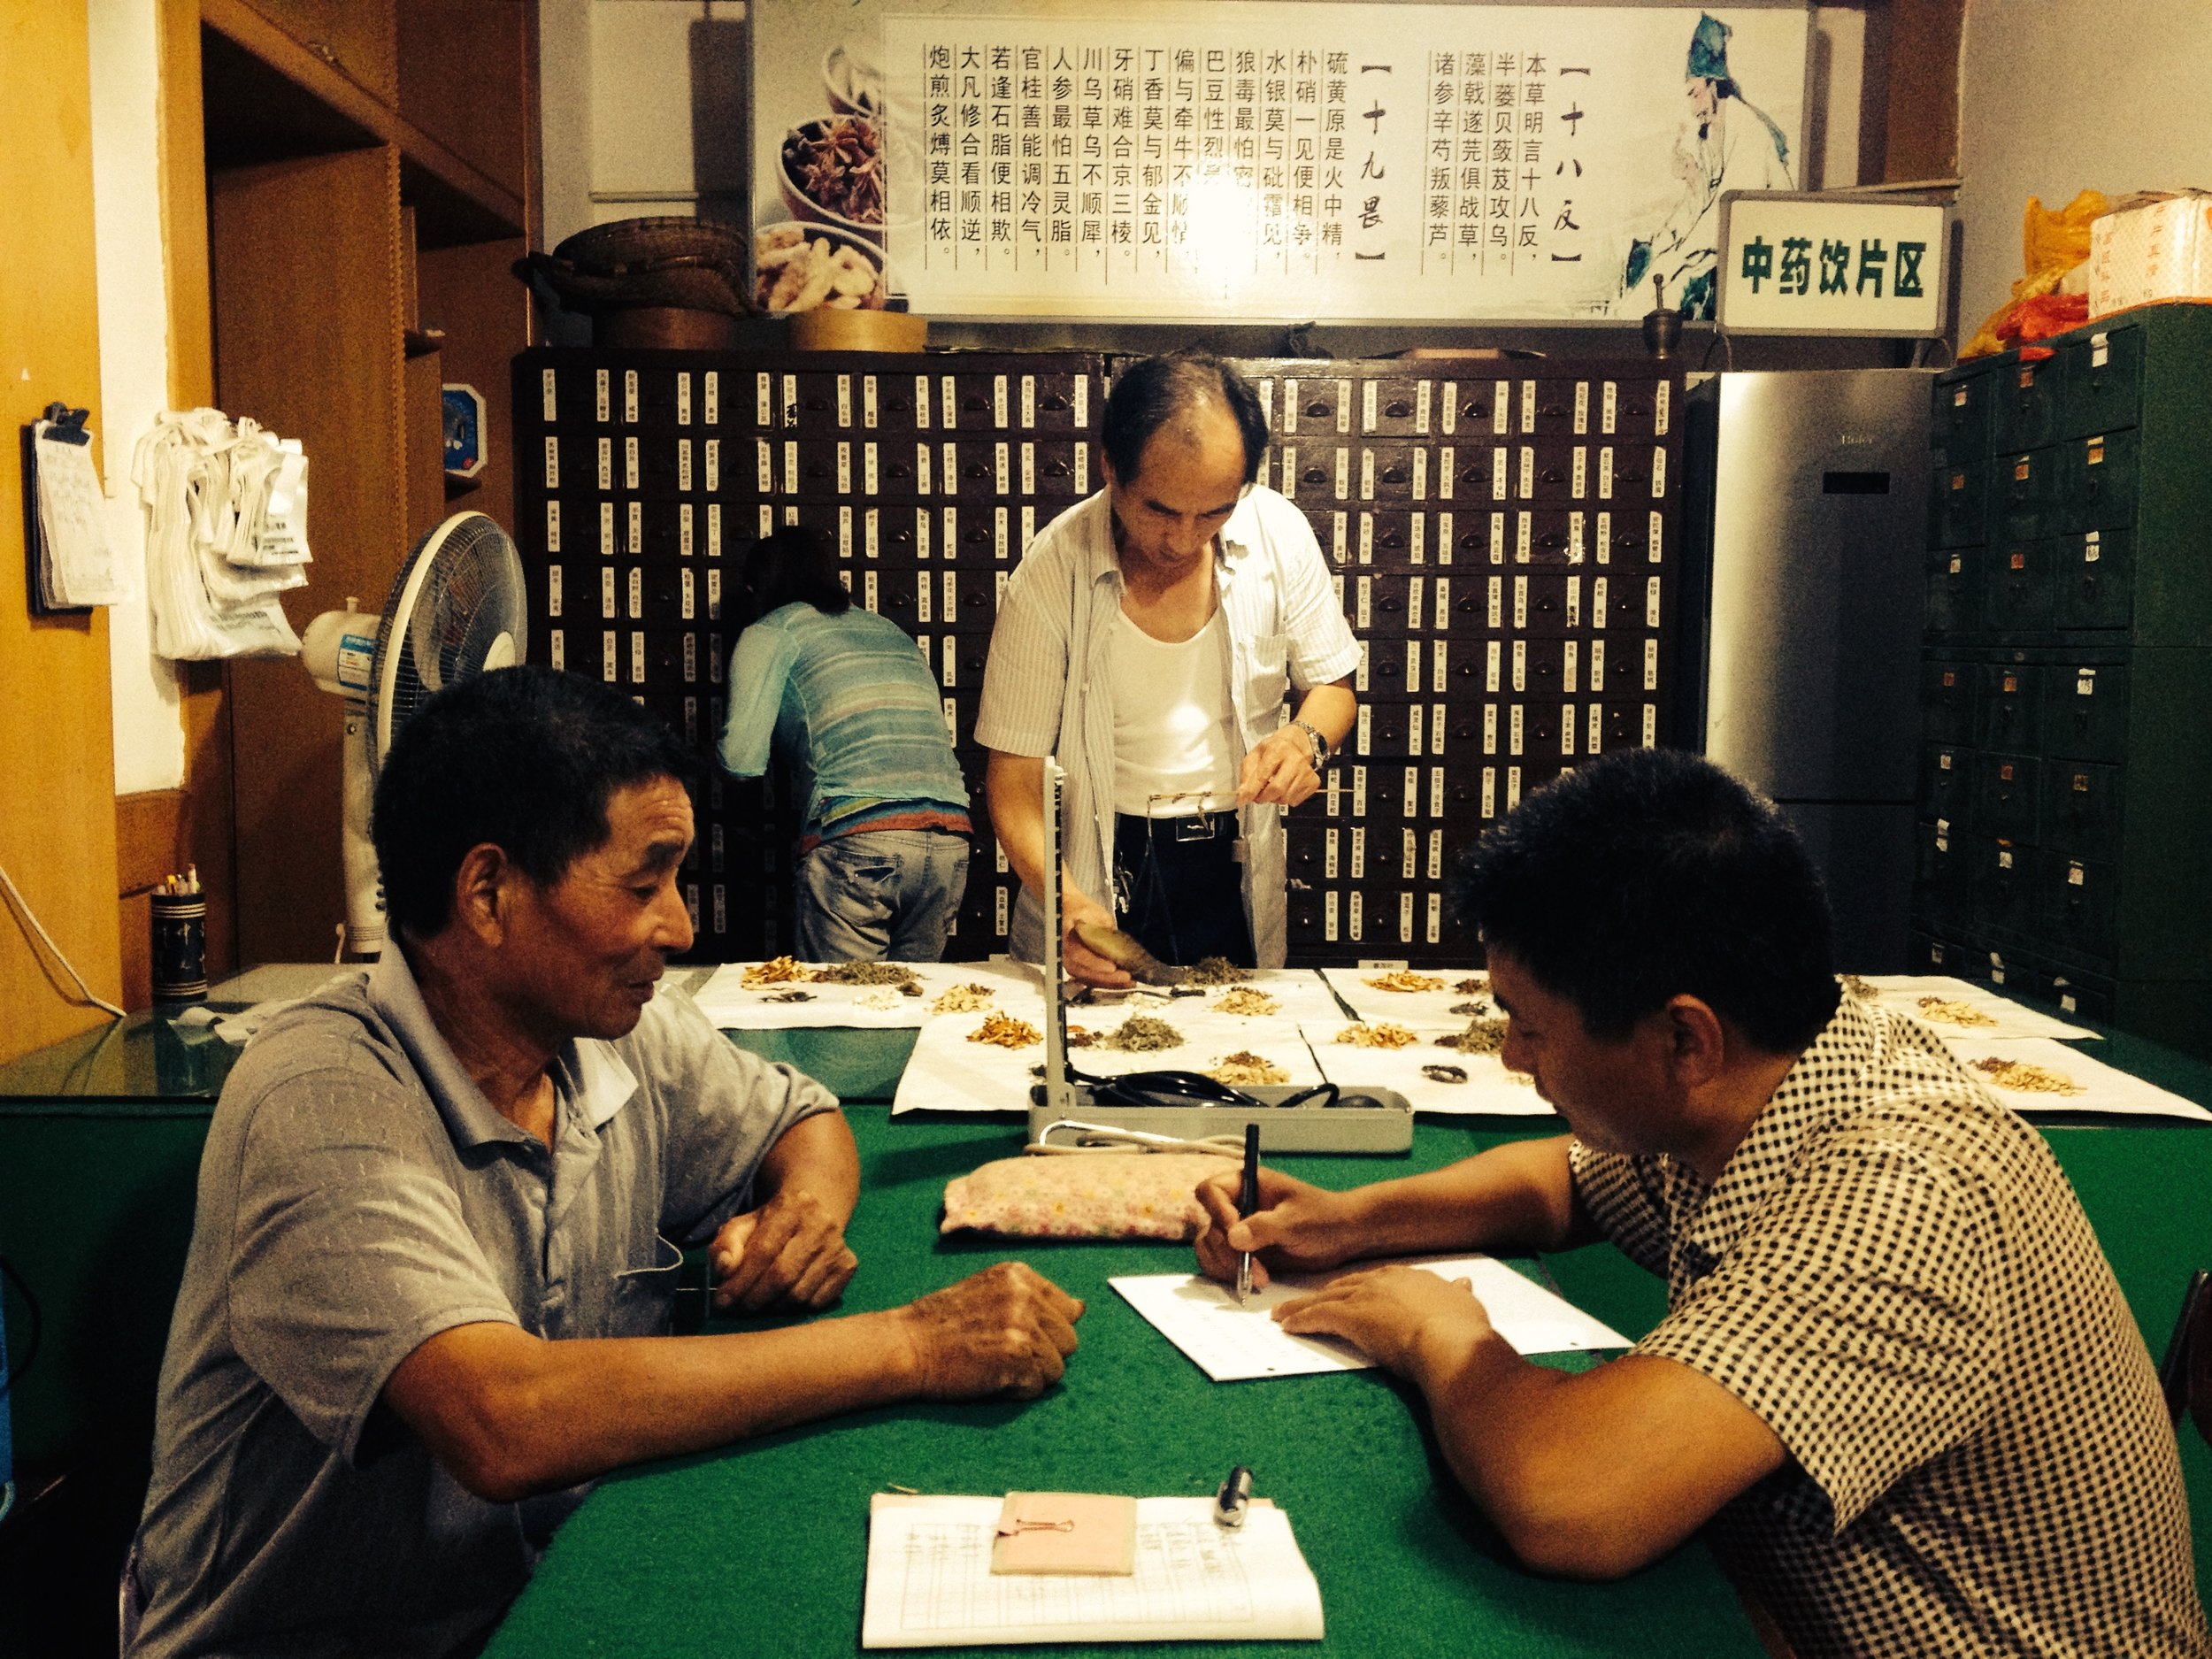 Traditional zuòtáng 坐堂 style consultation by one of Dr. Sun's senior students. In this small town, a practitioner would receive five yuan per visit plus a small percentage of the total cost of the prescription (Weiyang, Sha'anxi)